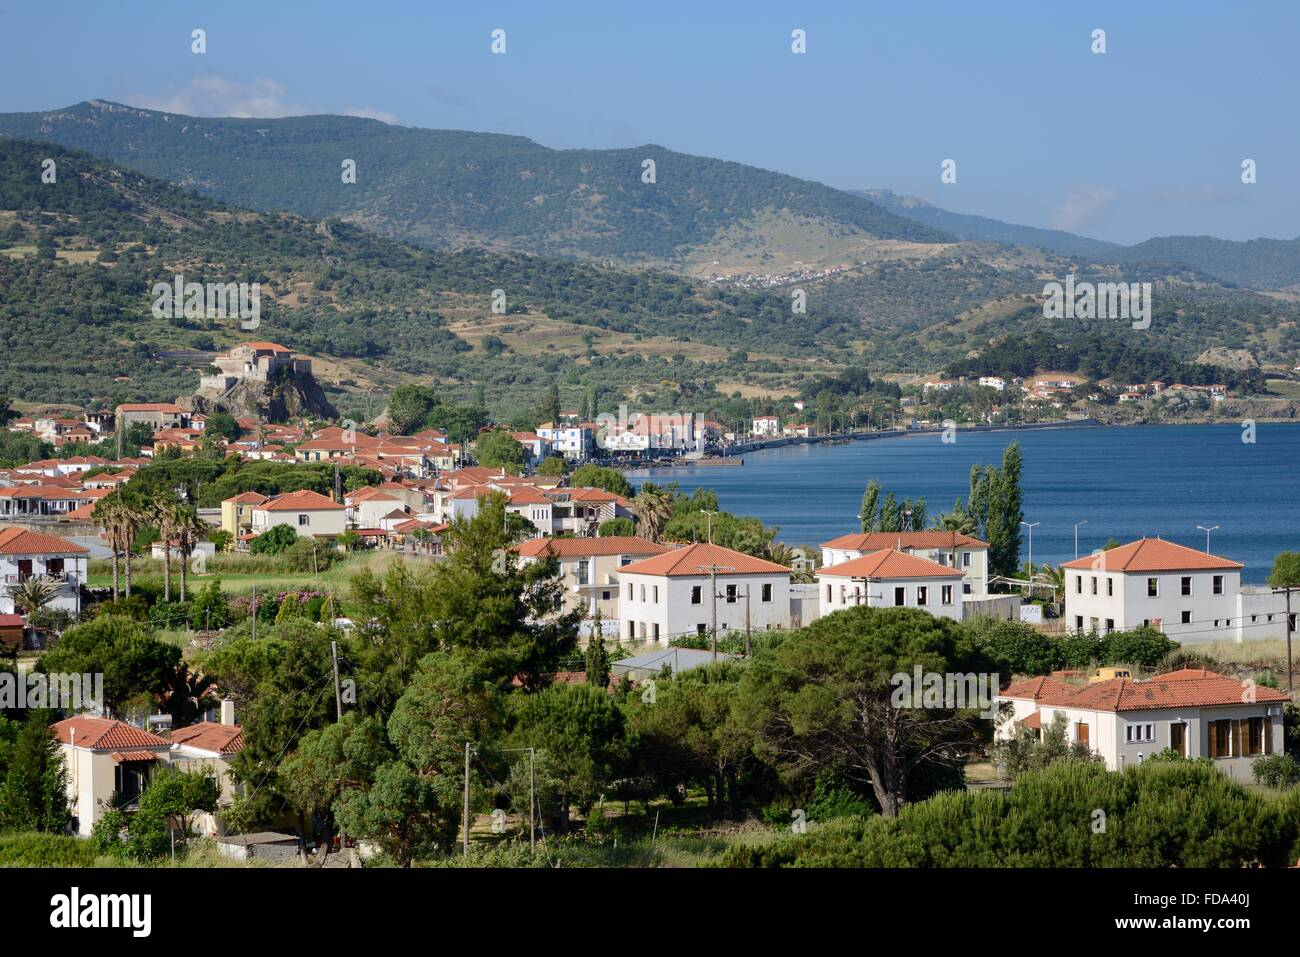 Overview of Petra village, with church of Panagia Glykofiloussa perched on a rock, Lesbos / Lesvos, Greece.. - Stock Image